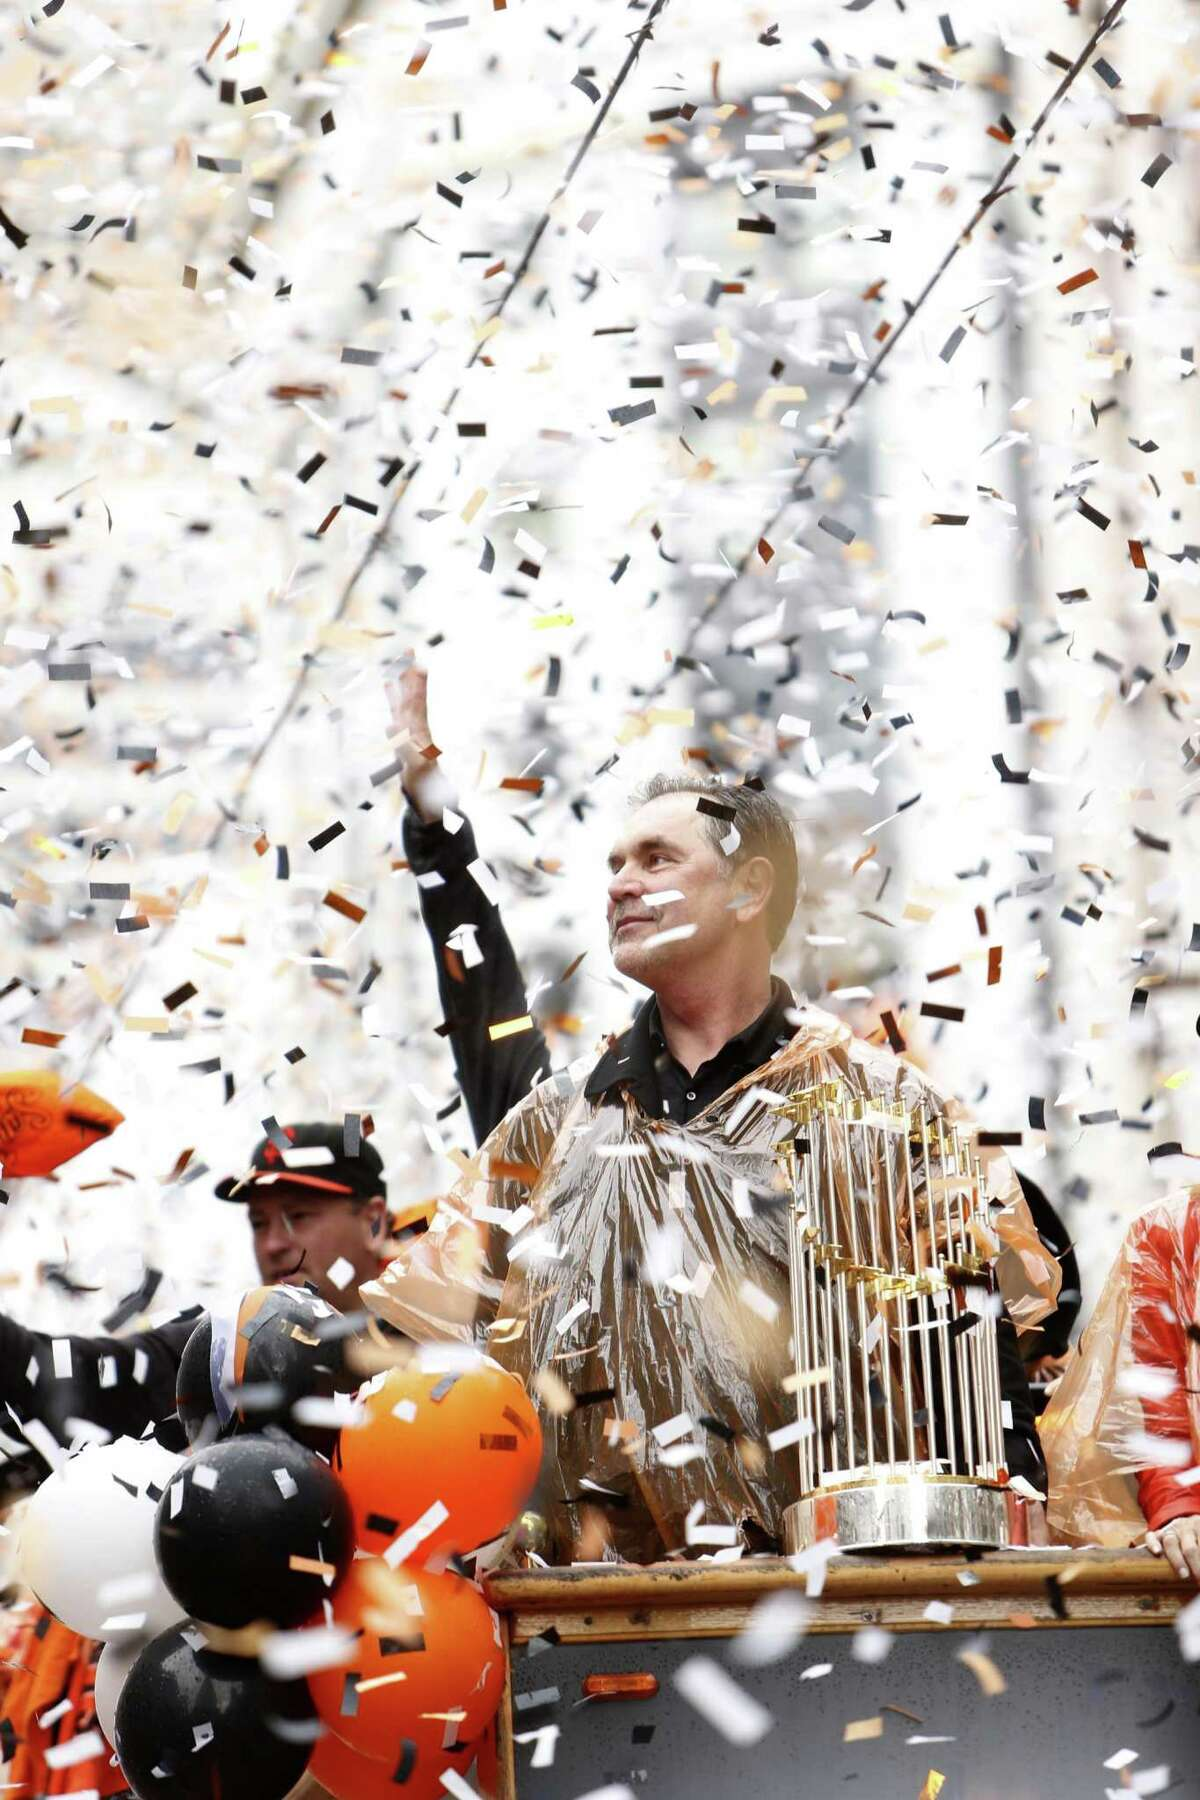 Bruce Bochy and the Giants were feted on Market Street in 2014 after their third World Series title.